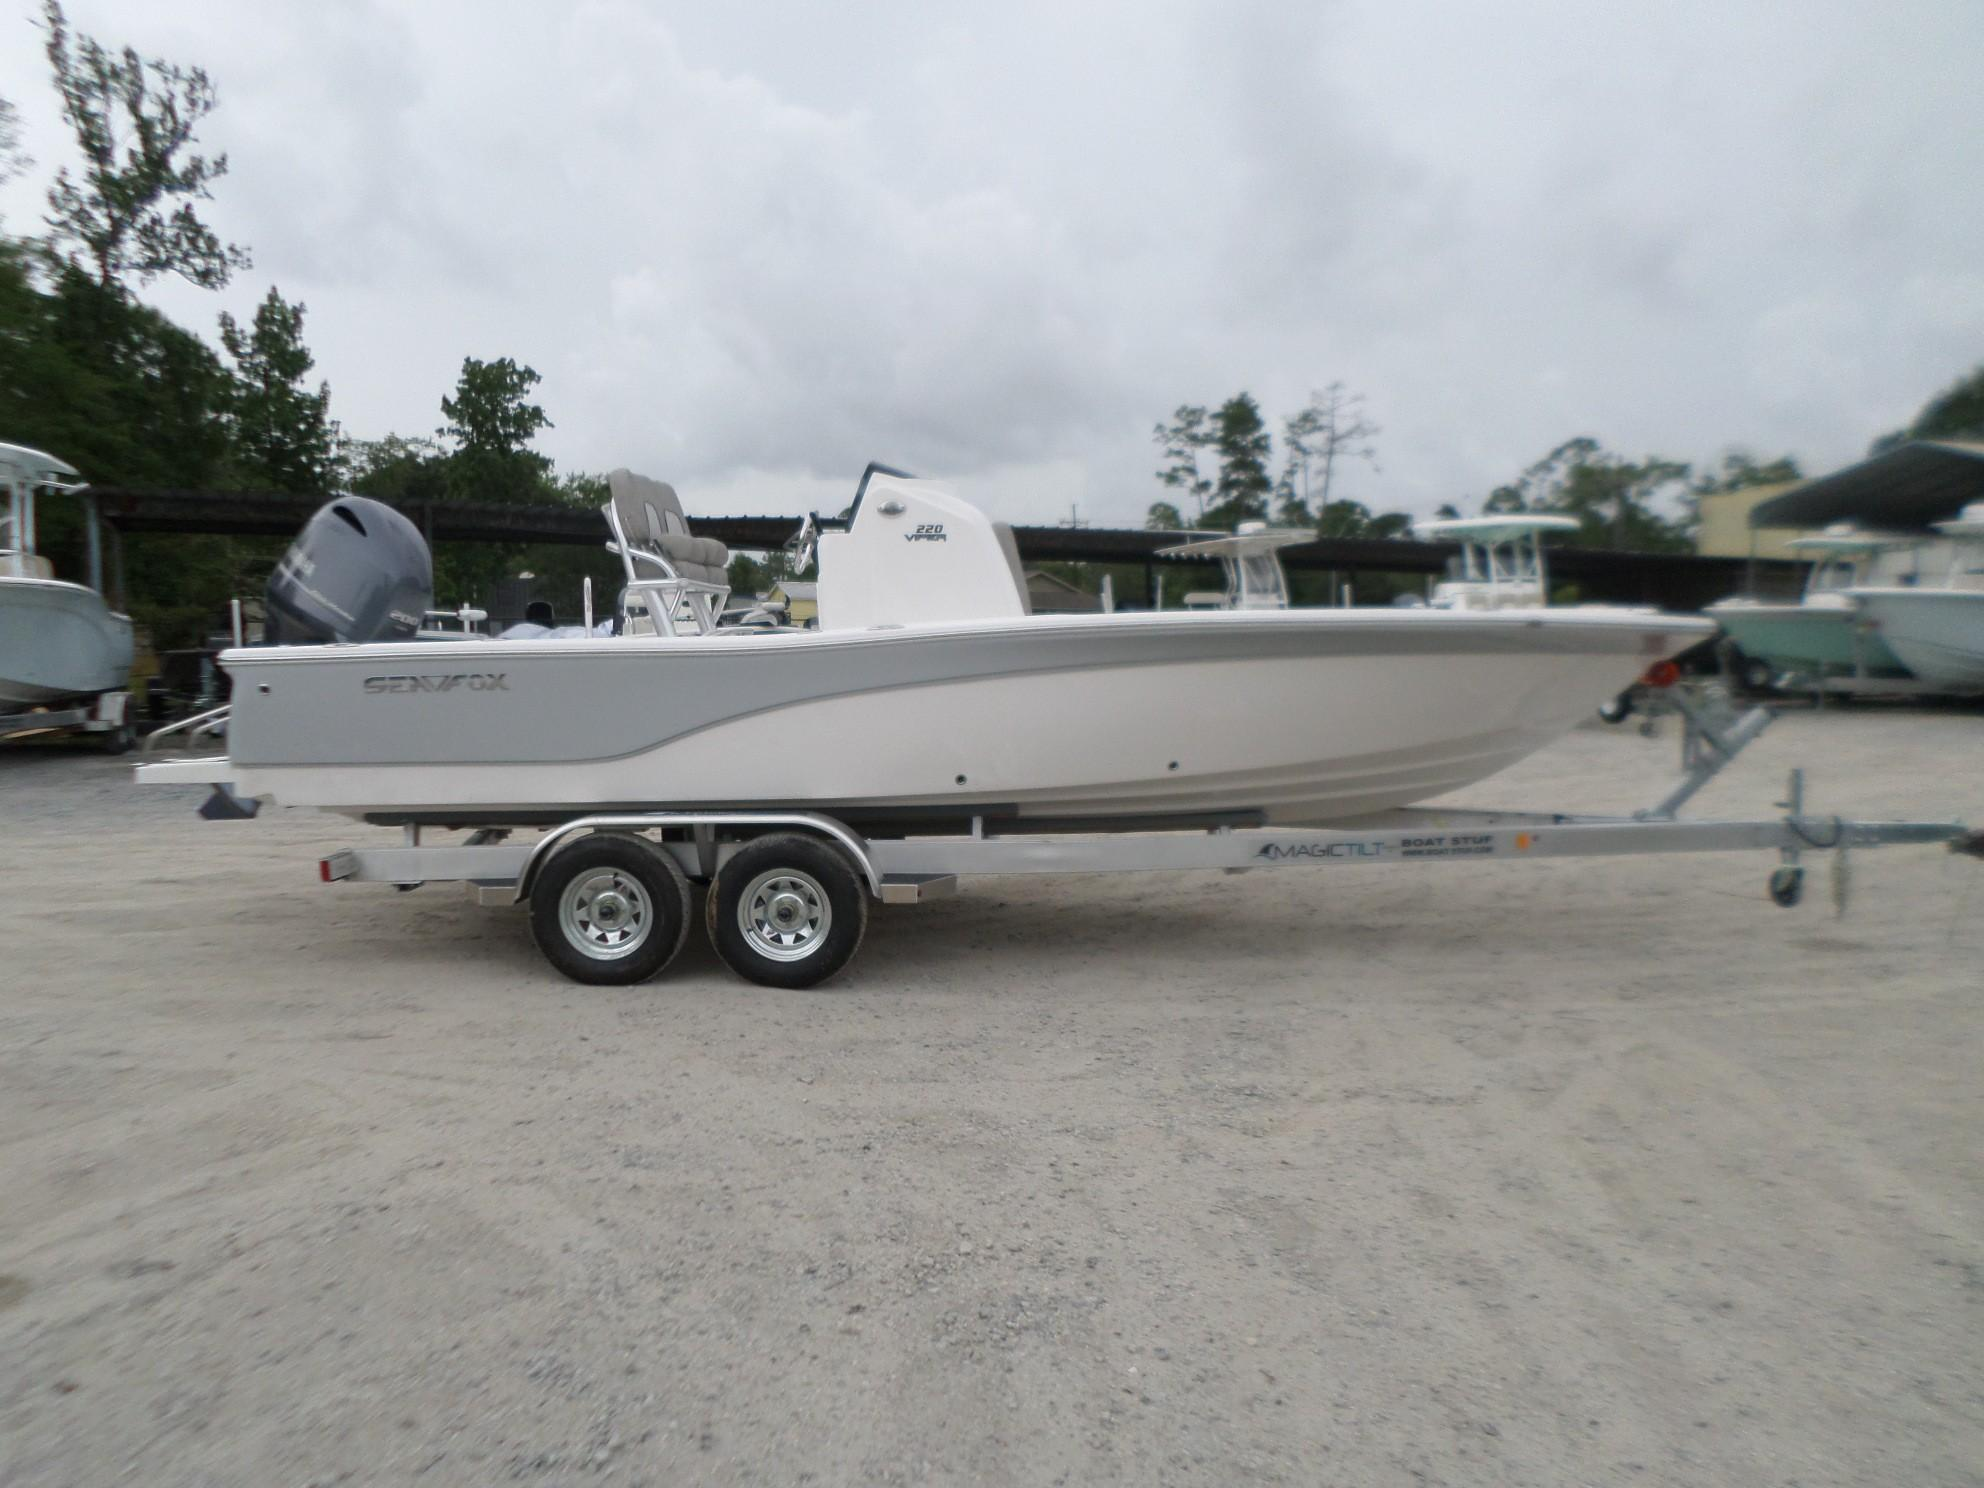 New  2019 22.33' Sea Fox 220 Viper Bay Boat in Slidell, Louisiana